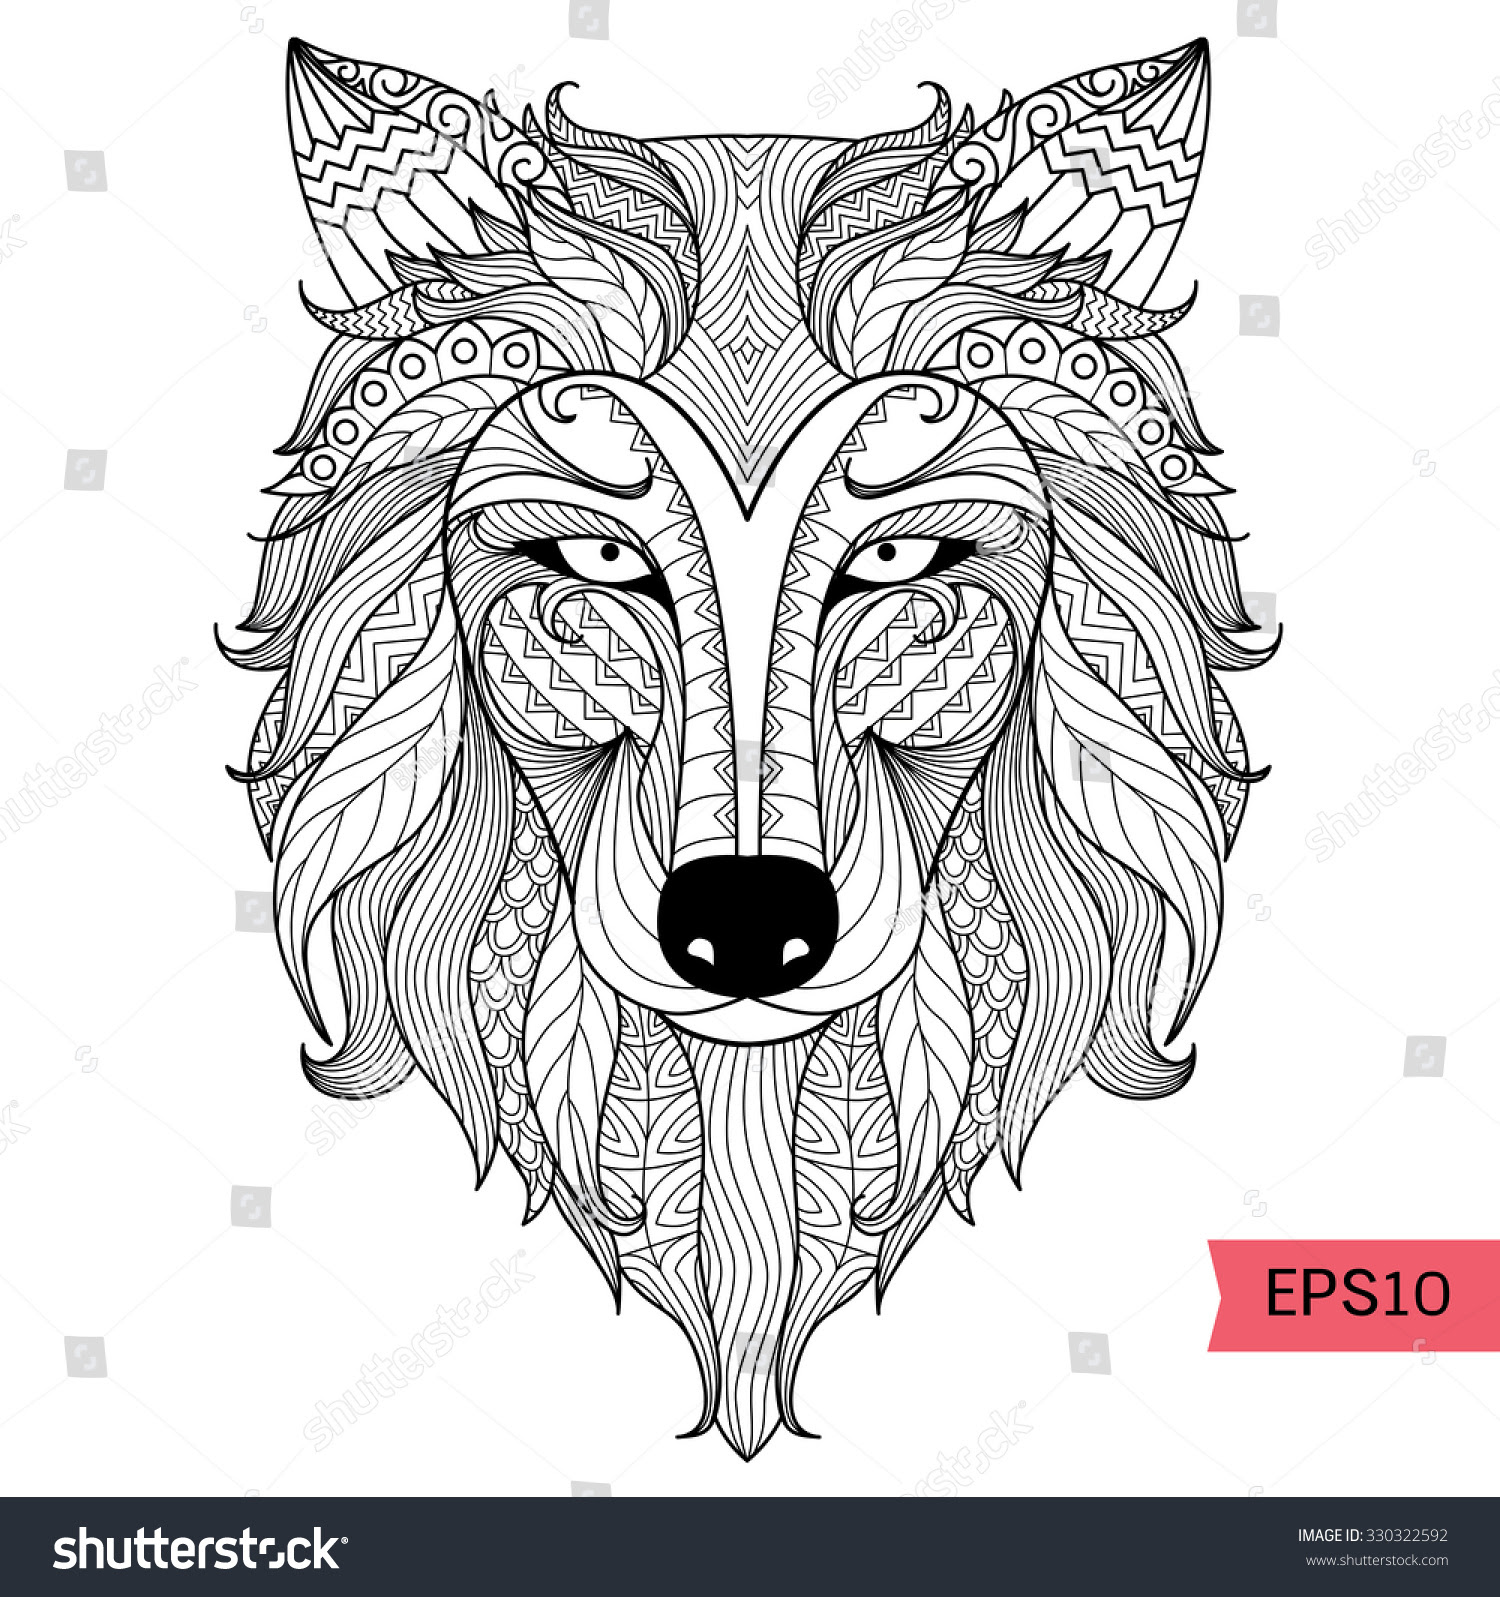 Detail Zentangle Wolf Coloring Pagetattoo T Stock Vector ...